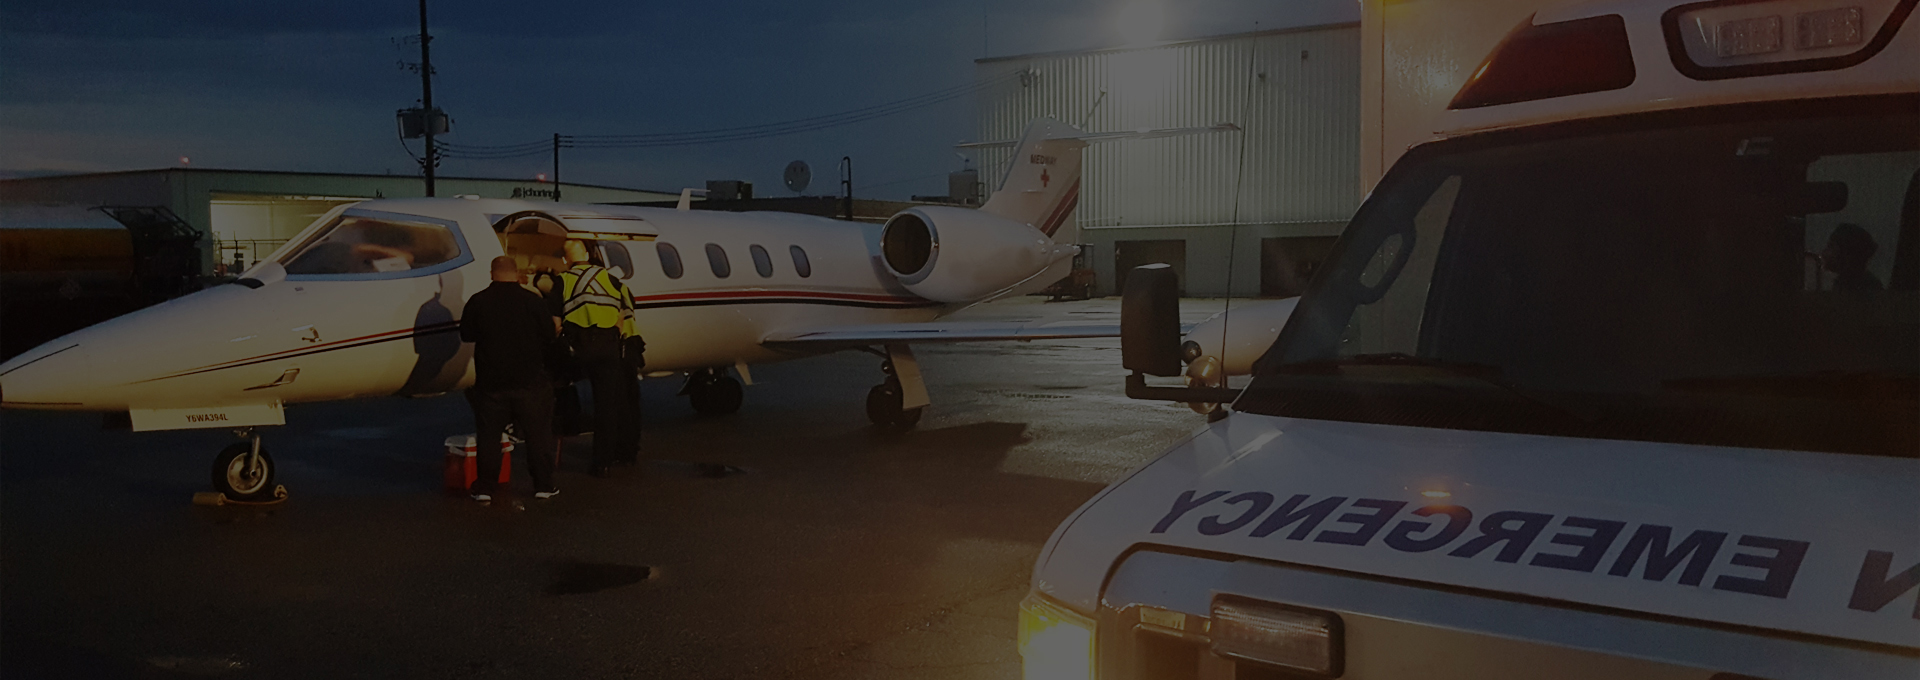 Air and Ground Patient Transfer Service